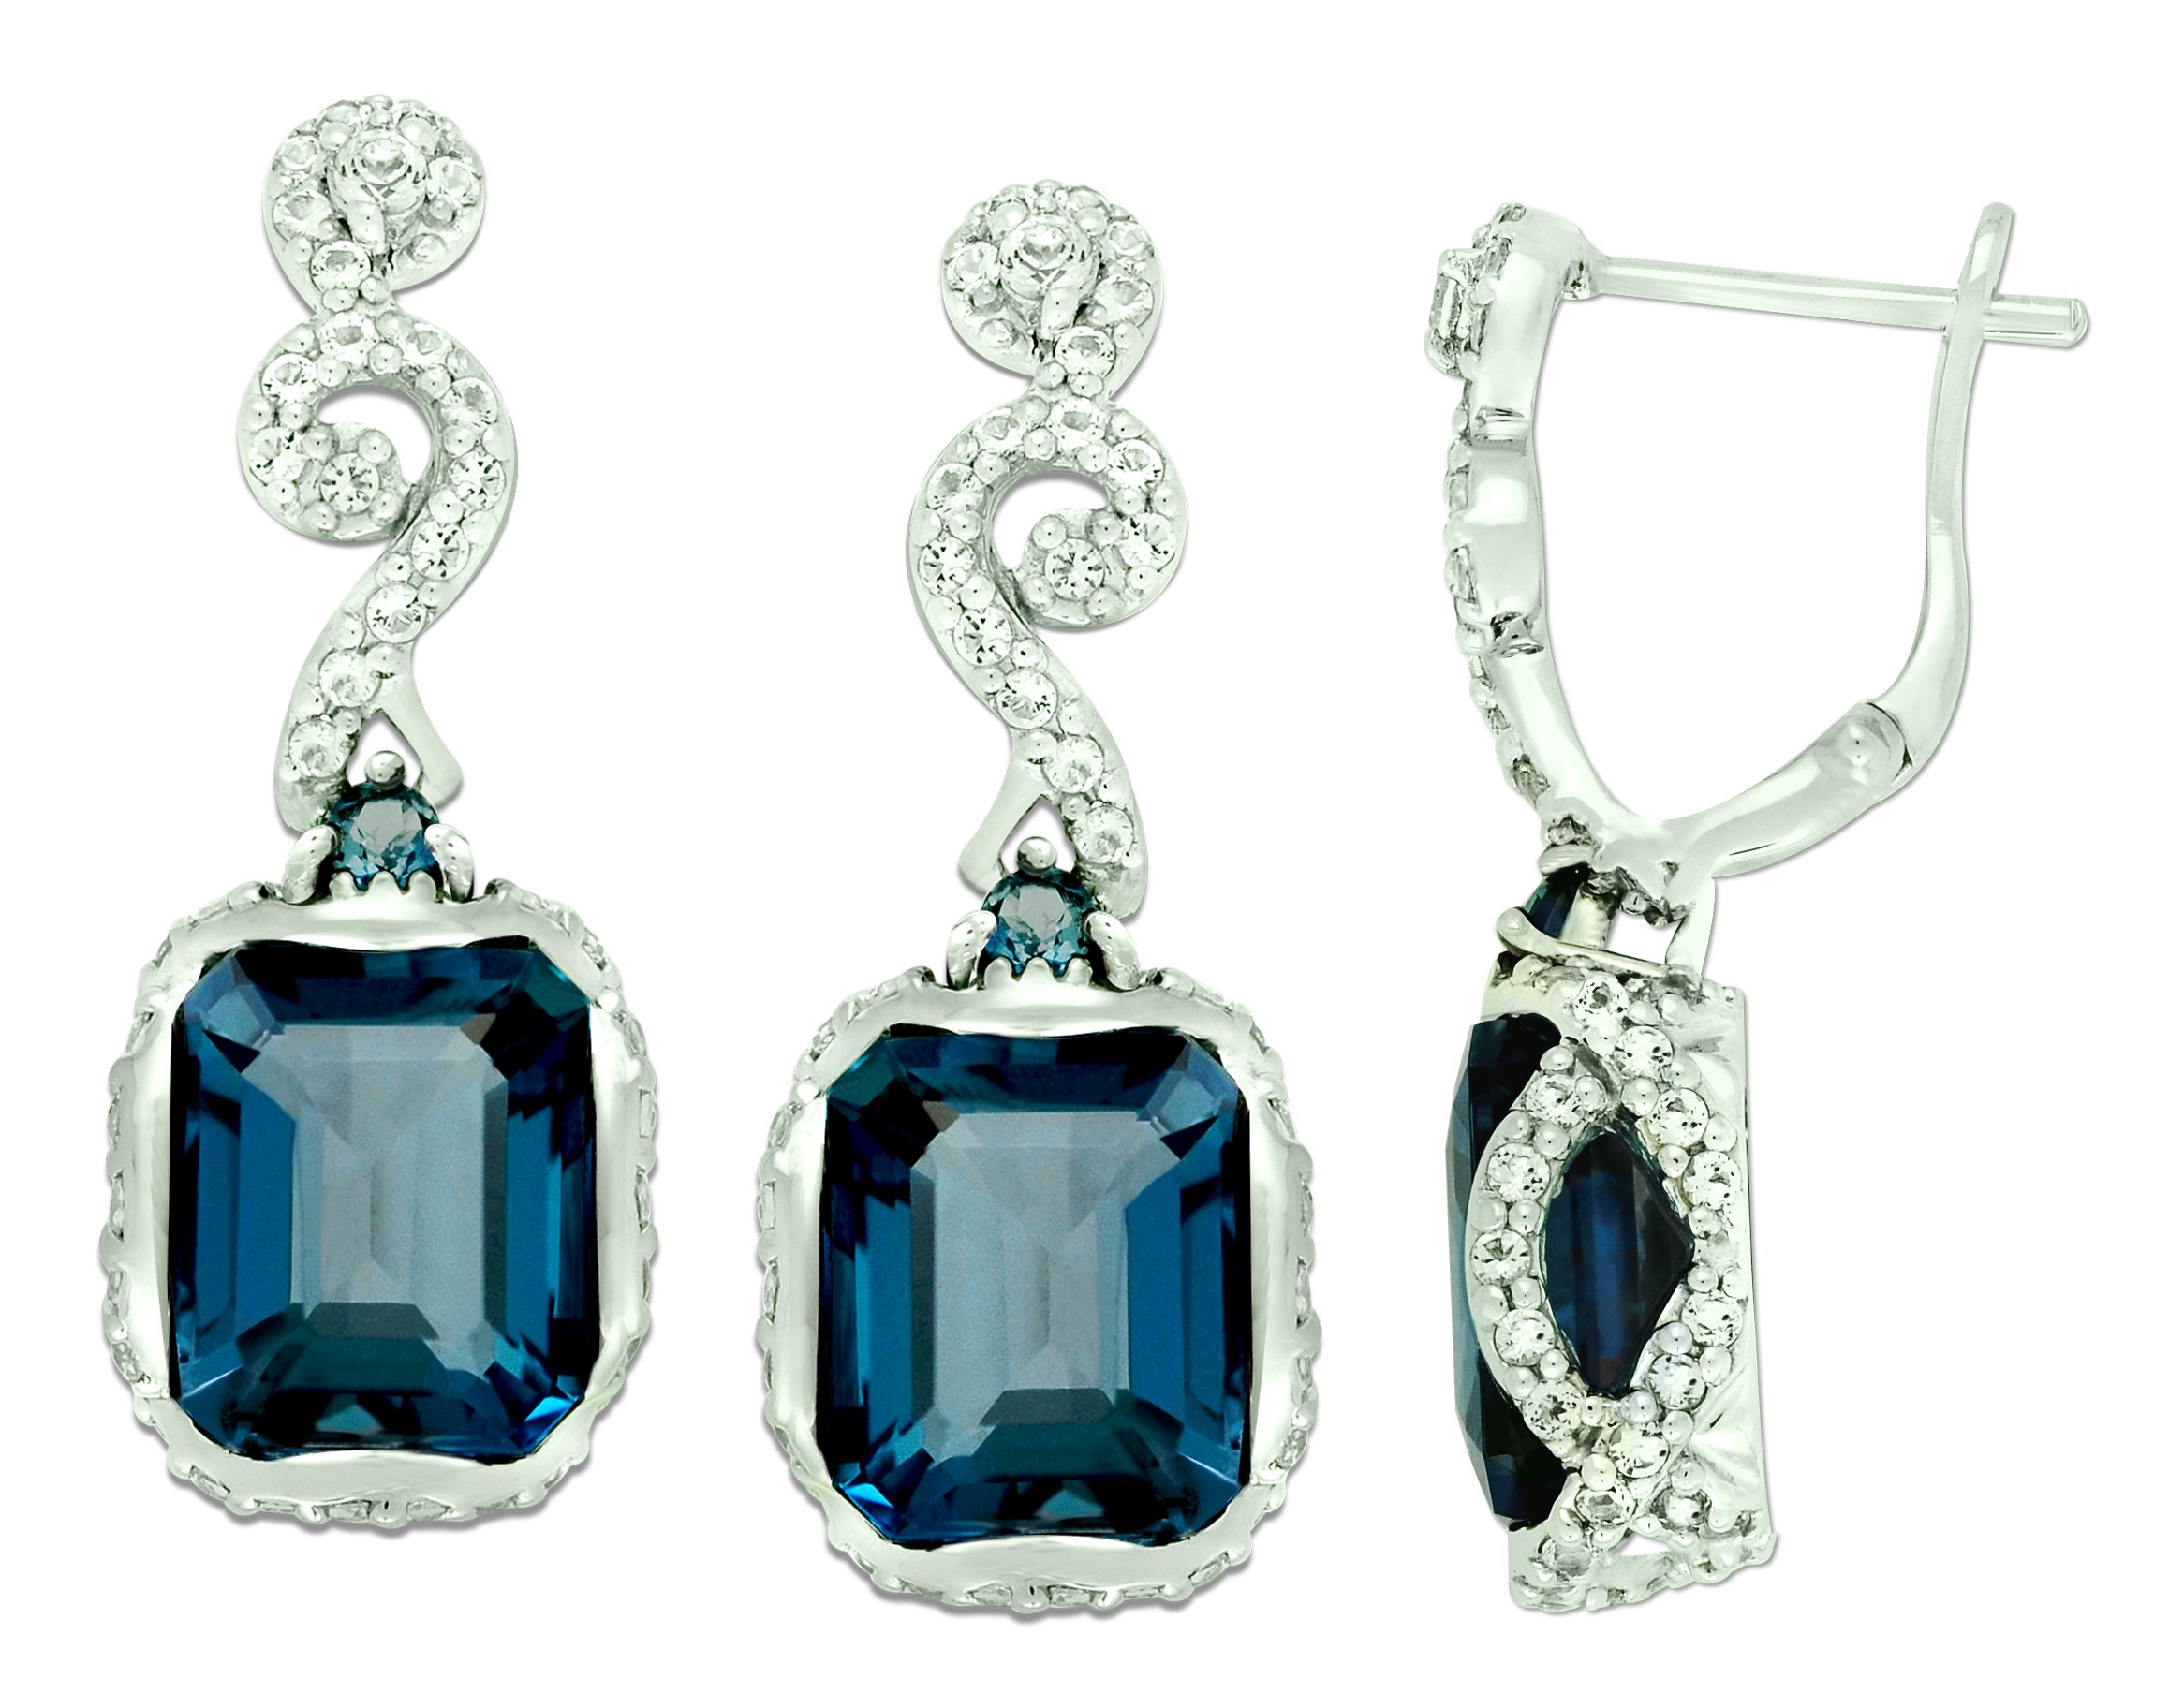 Sterling Silver 925 Earrings GENUINE LONDON BLUE TOPAZ 13.10 Cts with RHODIUM-PLATED Finish, DANGLE Style (london-blue-topaz) by RB Gems